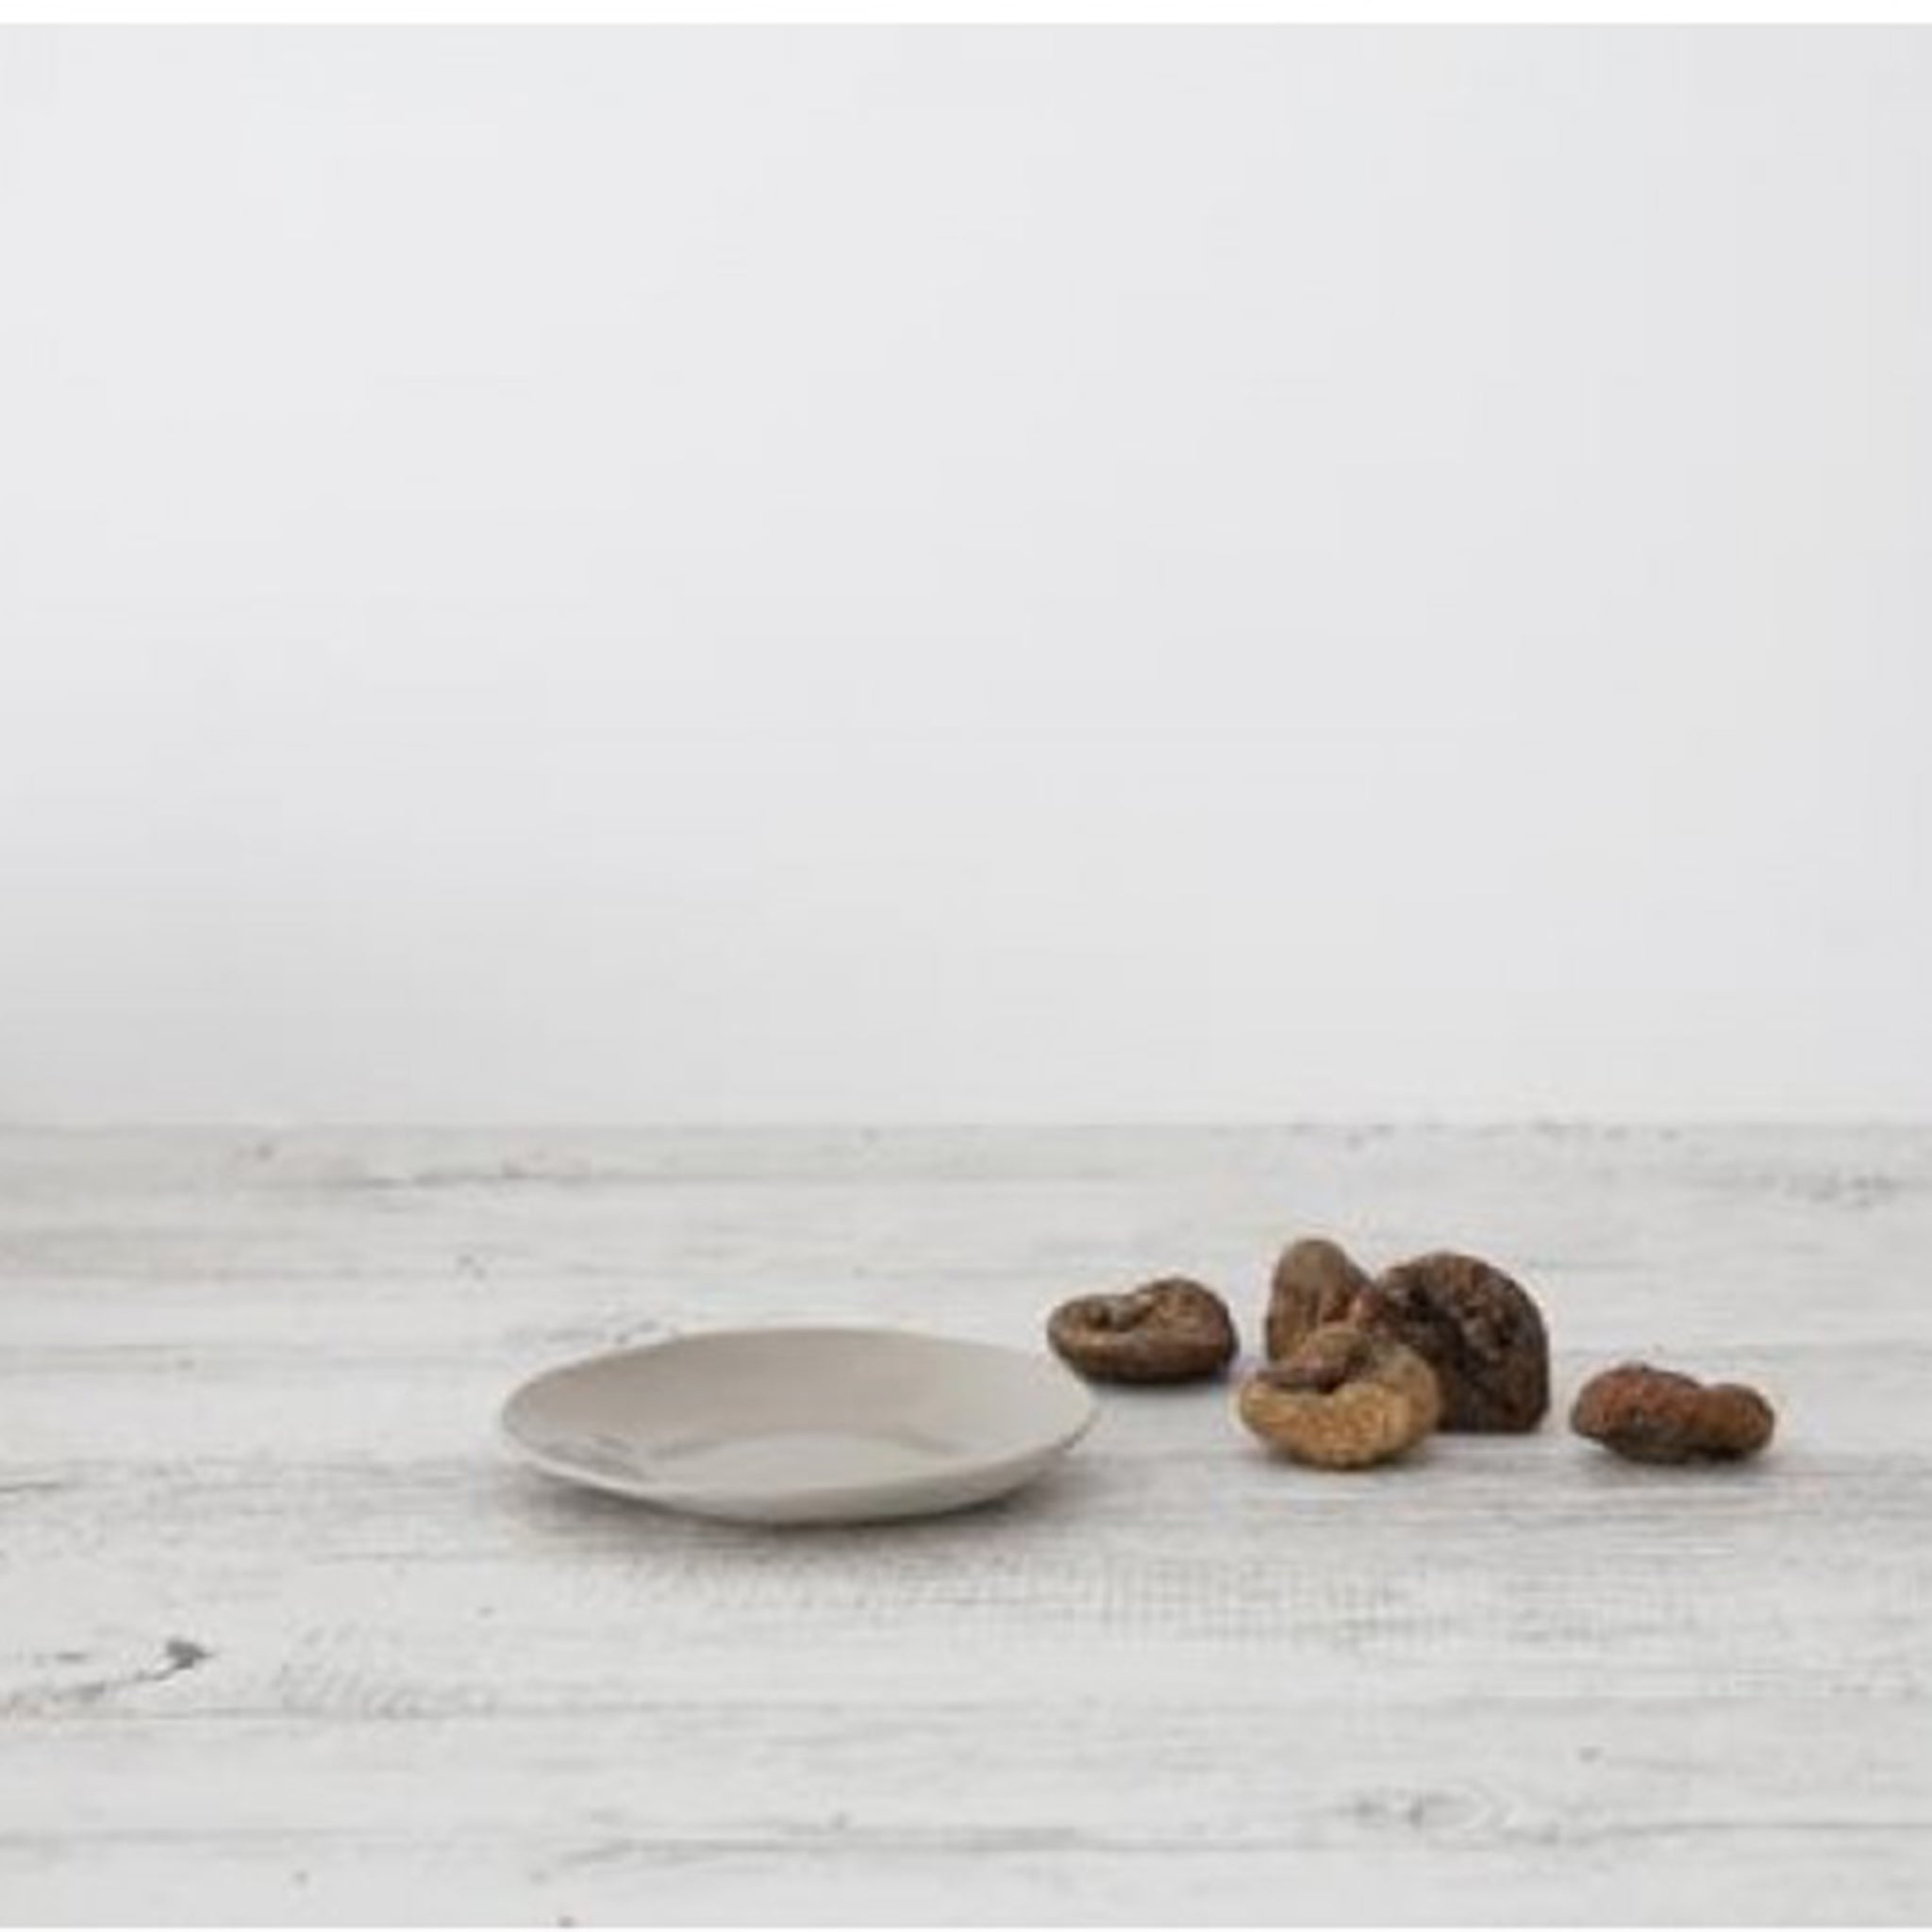 A gorgeous little side plate available in 2 sizes, serve a few little cookies or chocolates or some cheese. This organic Shape fits perfectly in your modern home.